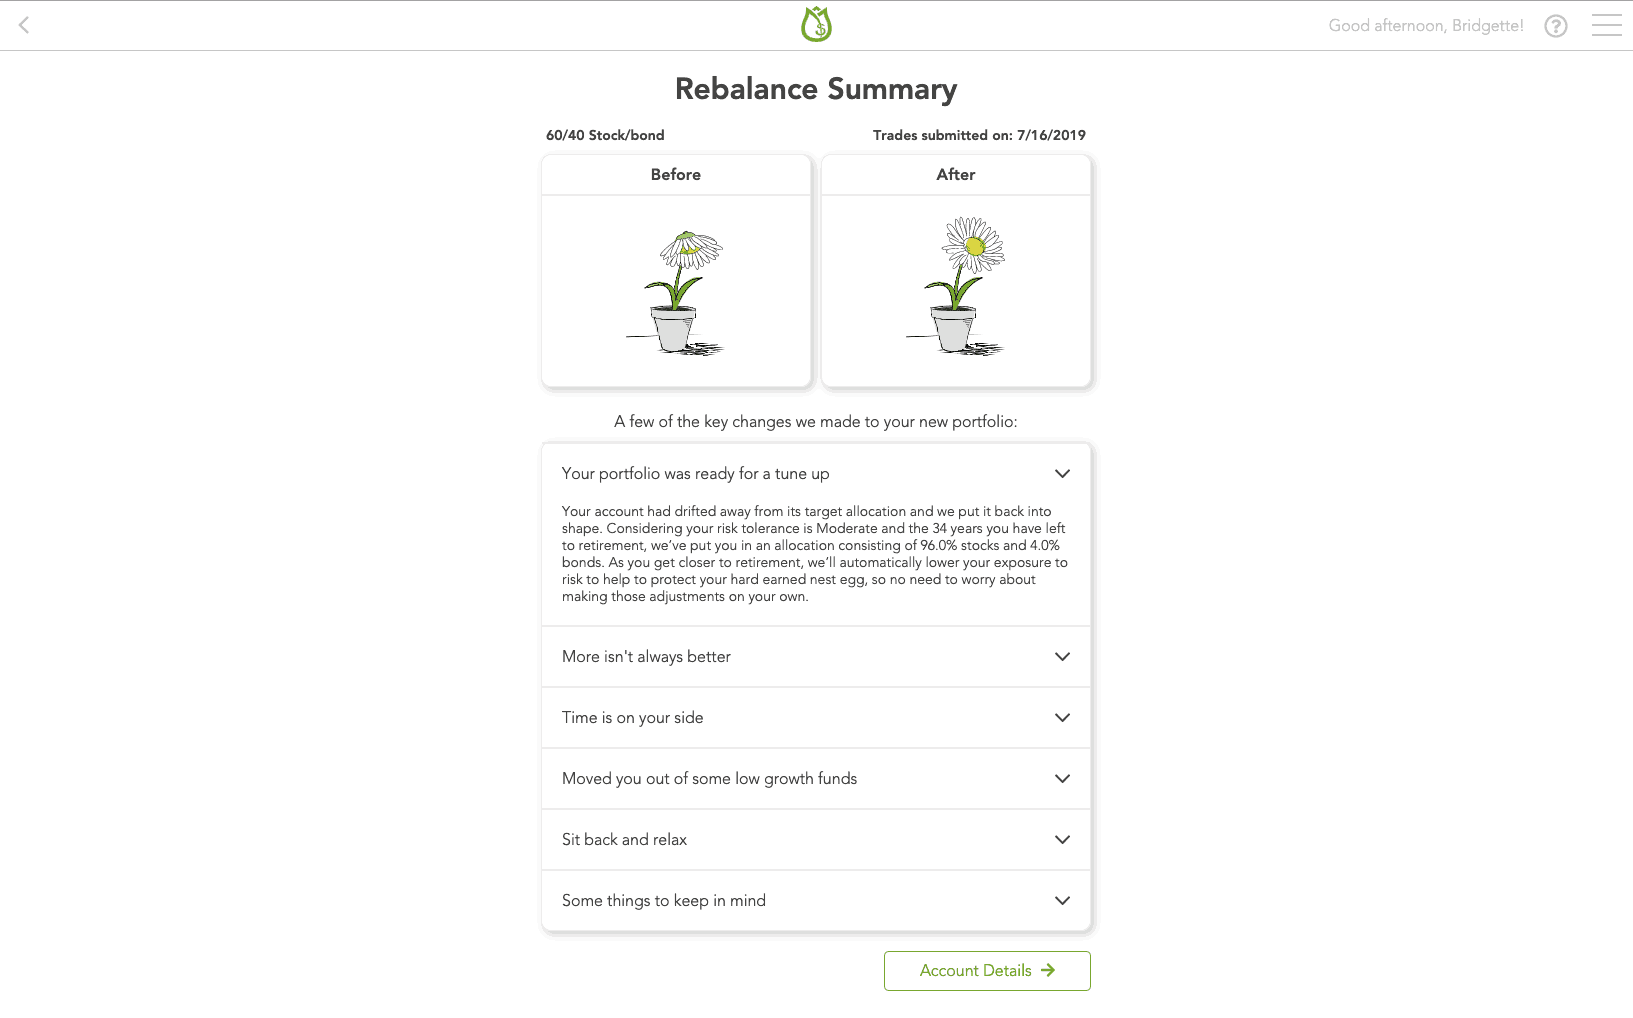 Rebalance Summary Screenshot from Blooom